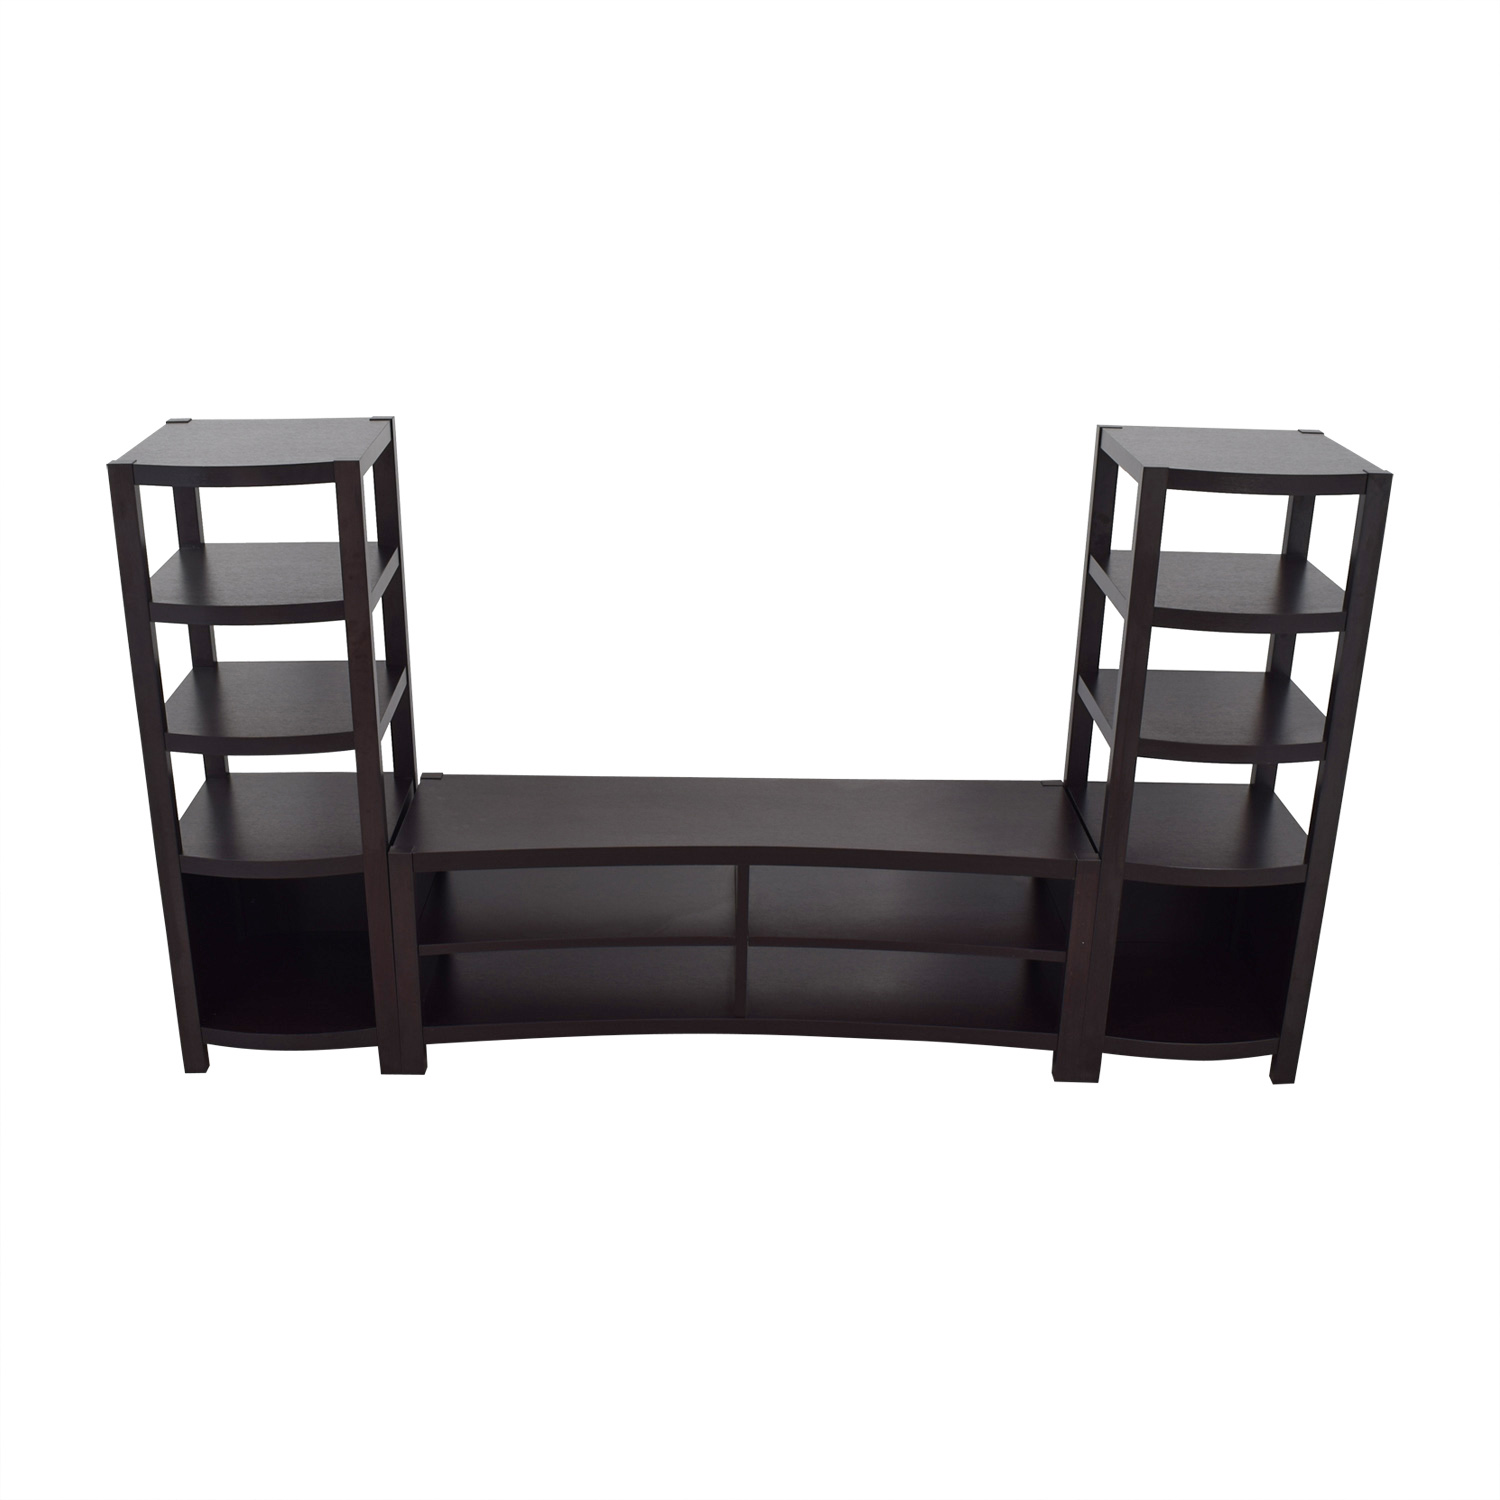 Black Curved Media Console with Towers nyc